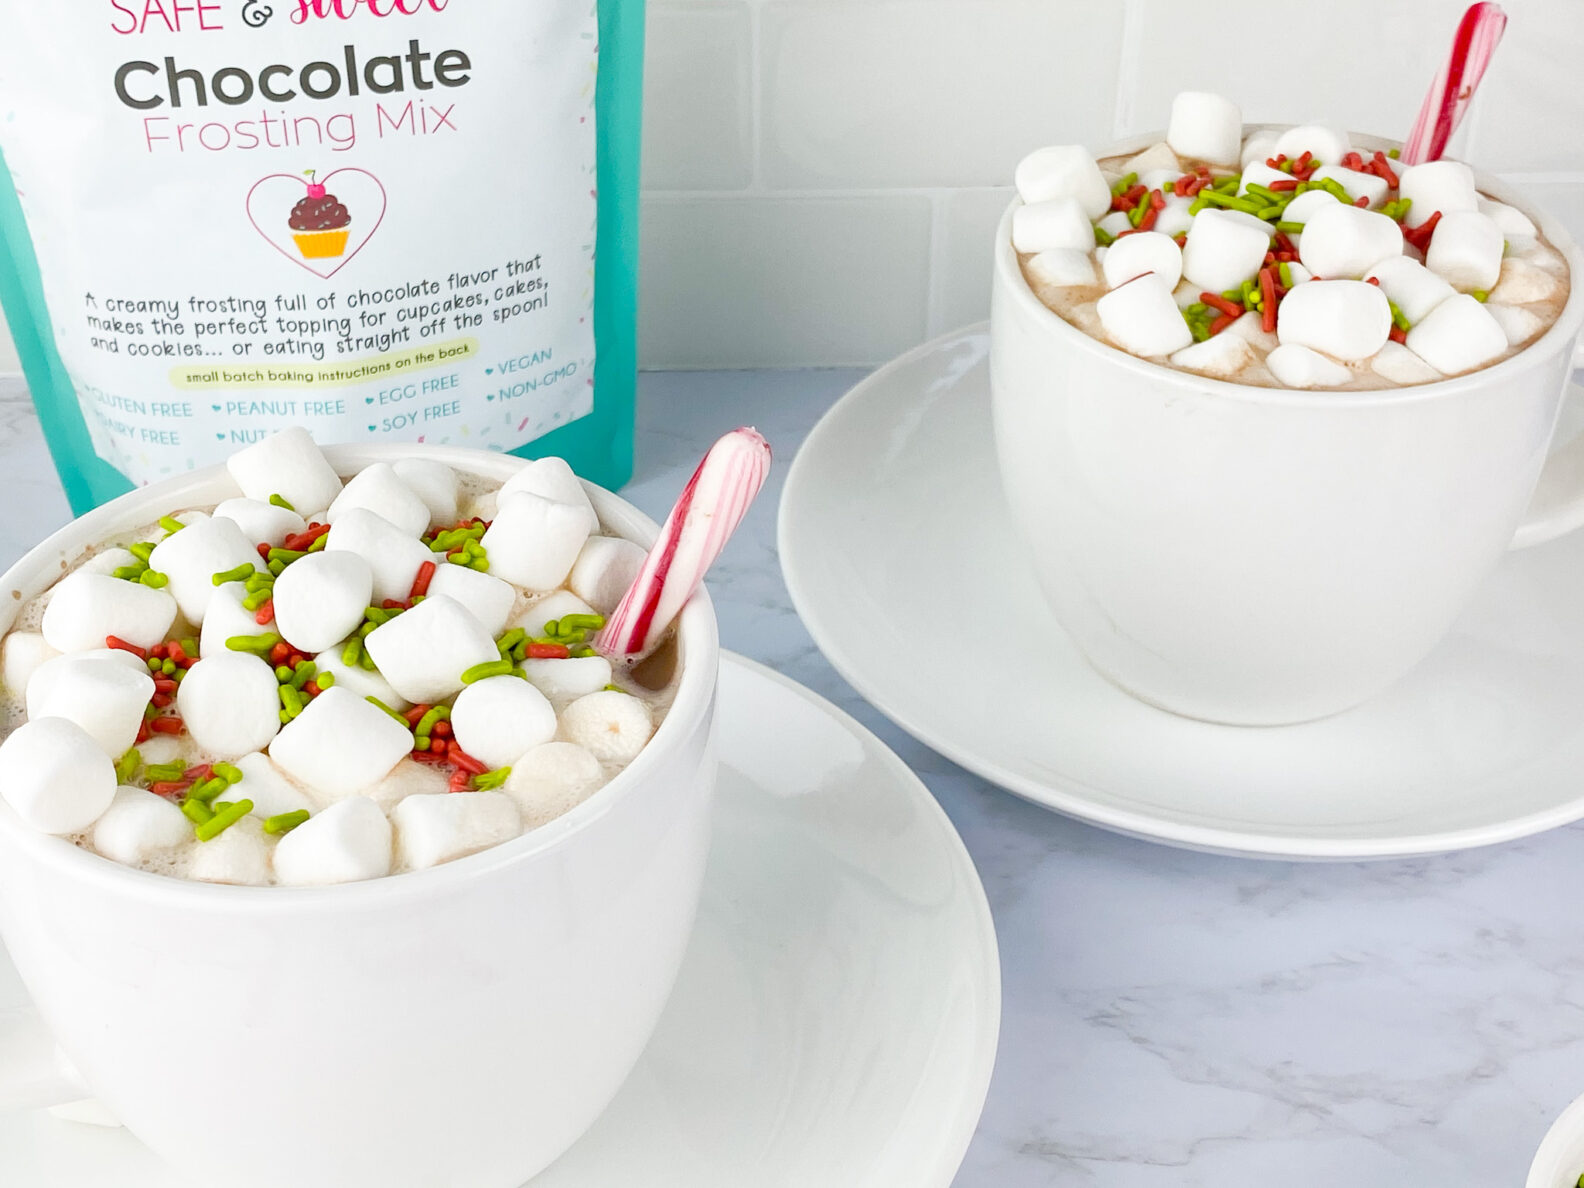 Kate's Safe and Sweet - Hot Cocoa Mug with Toppings